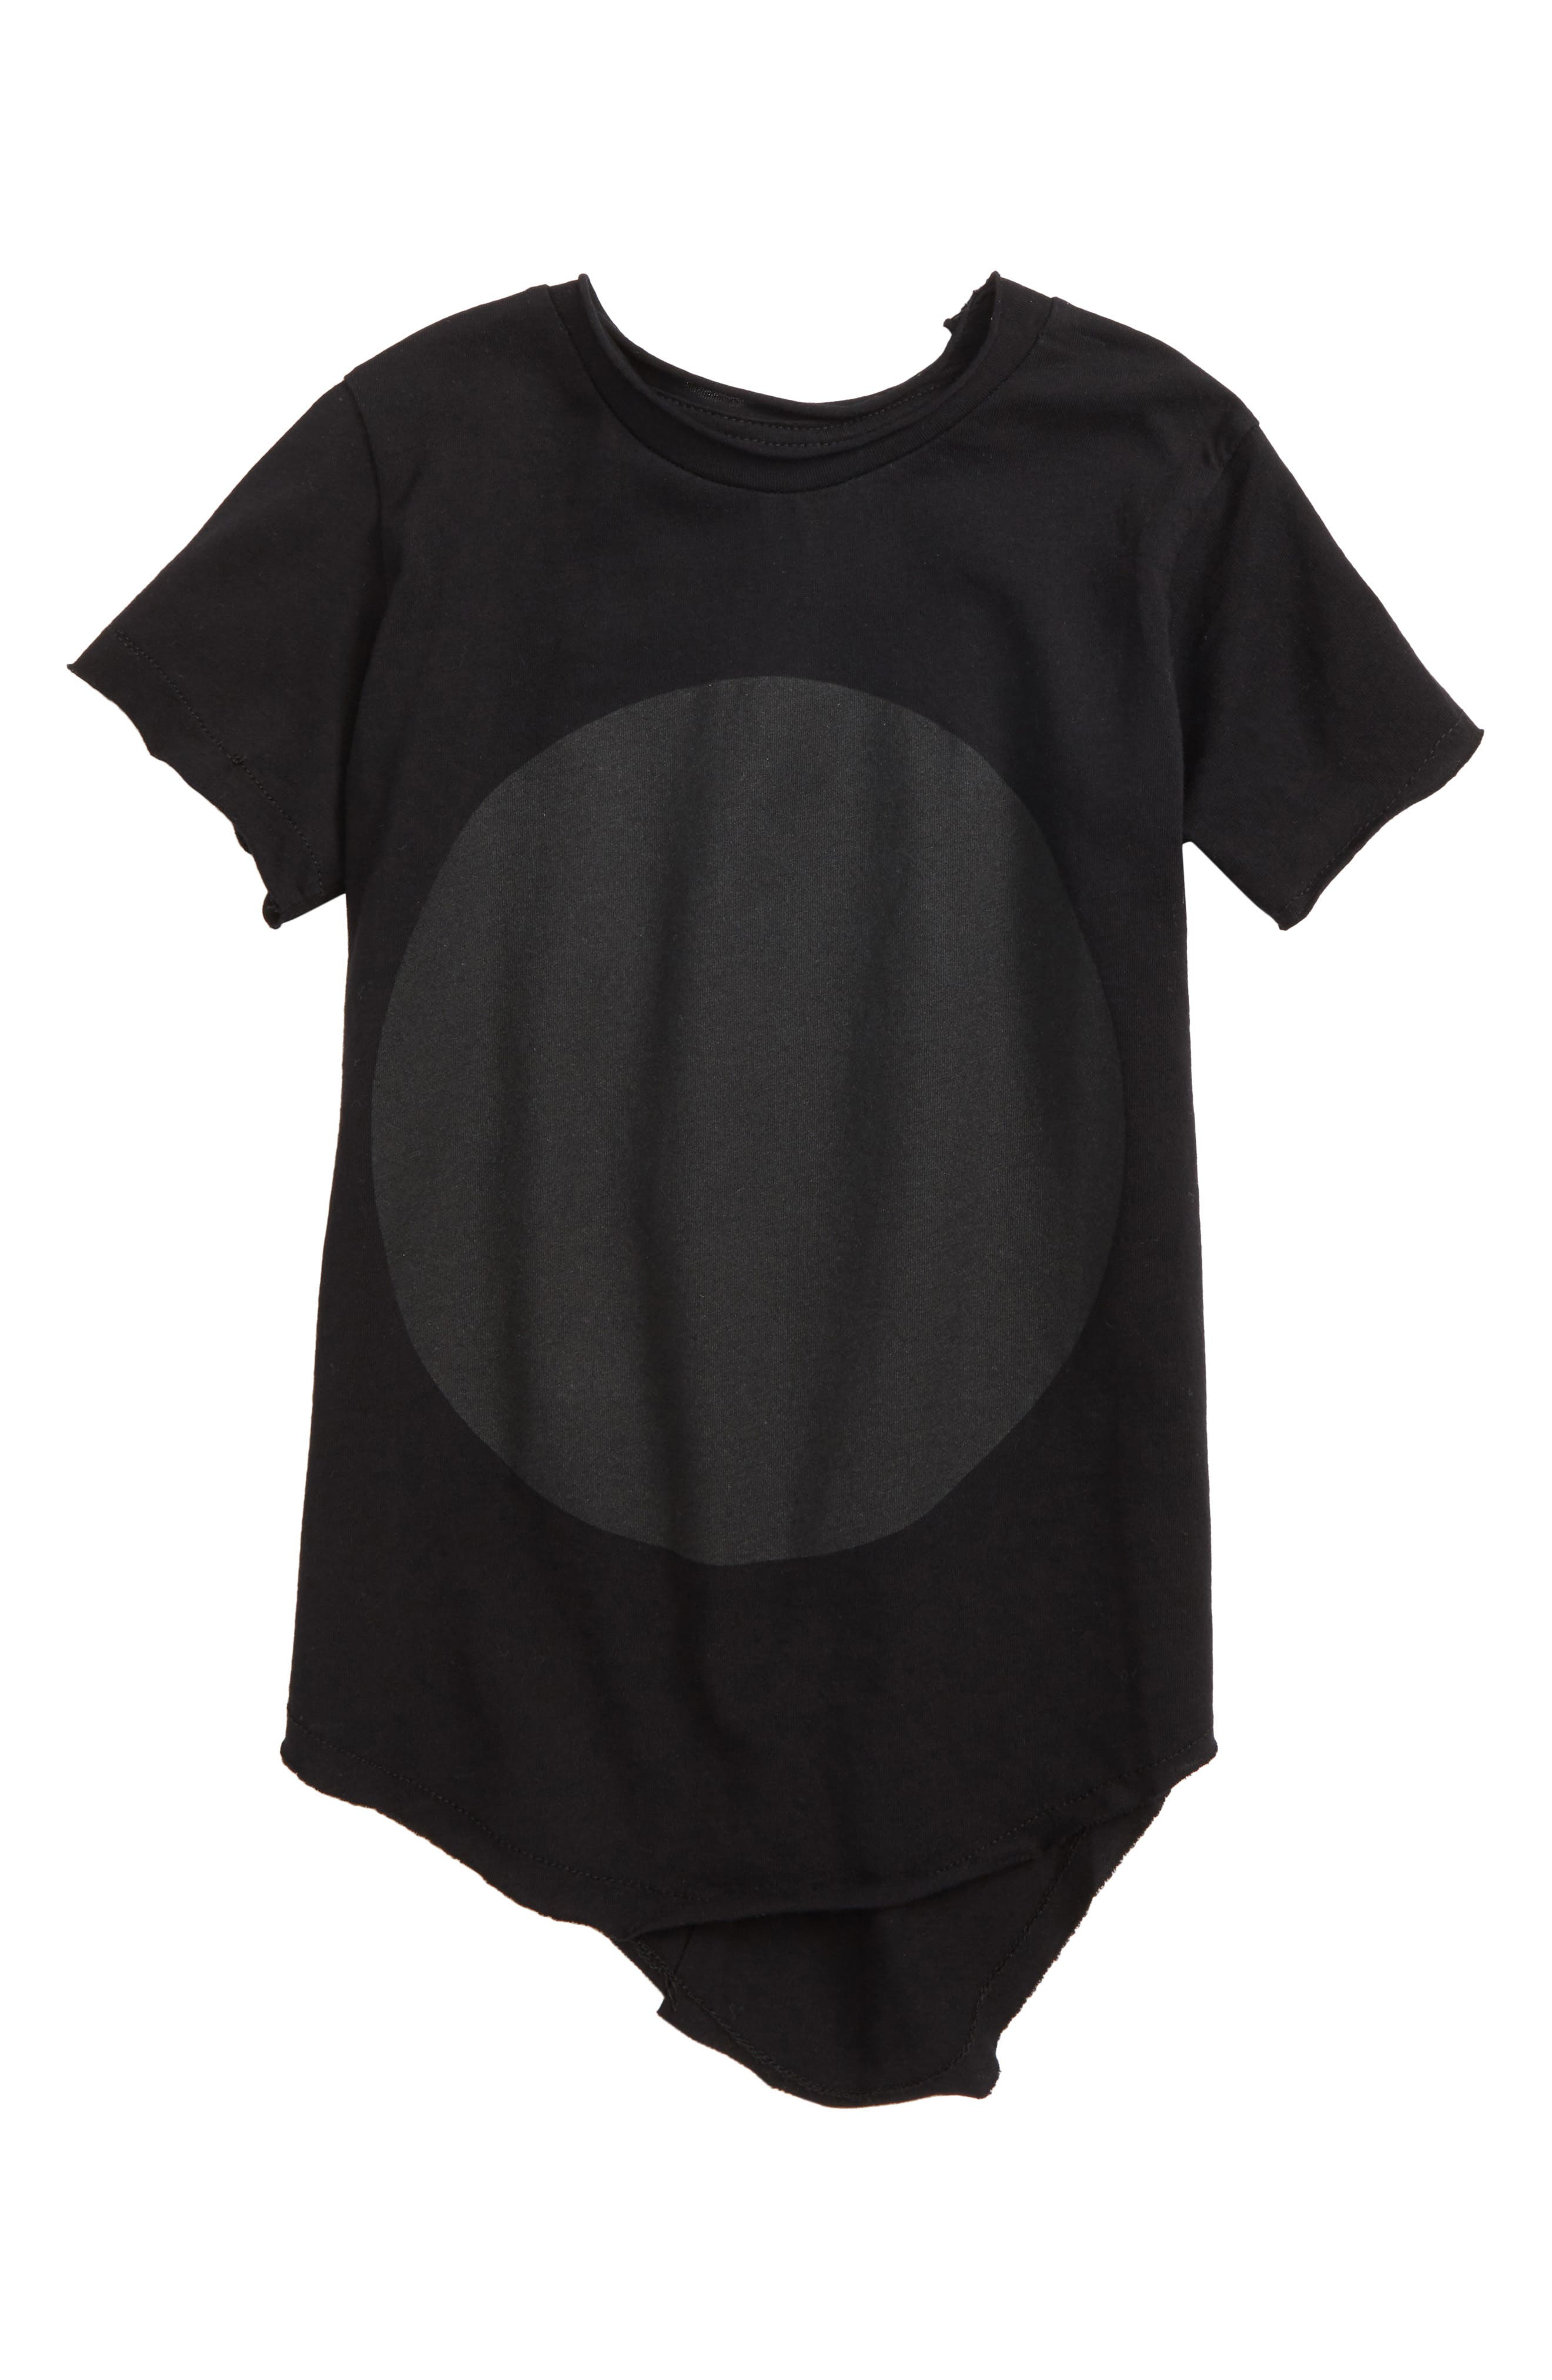 Circle Graphic Shirt,                         Main,                         color, Black